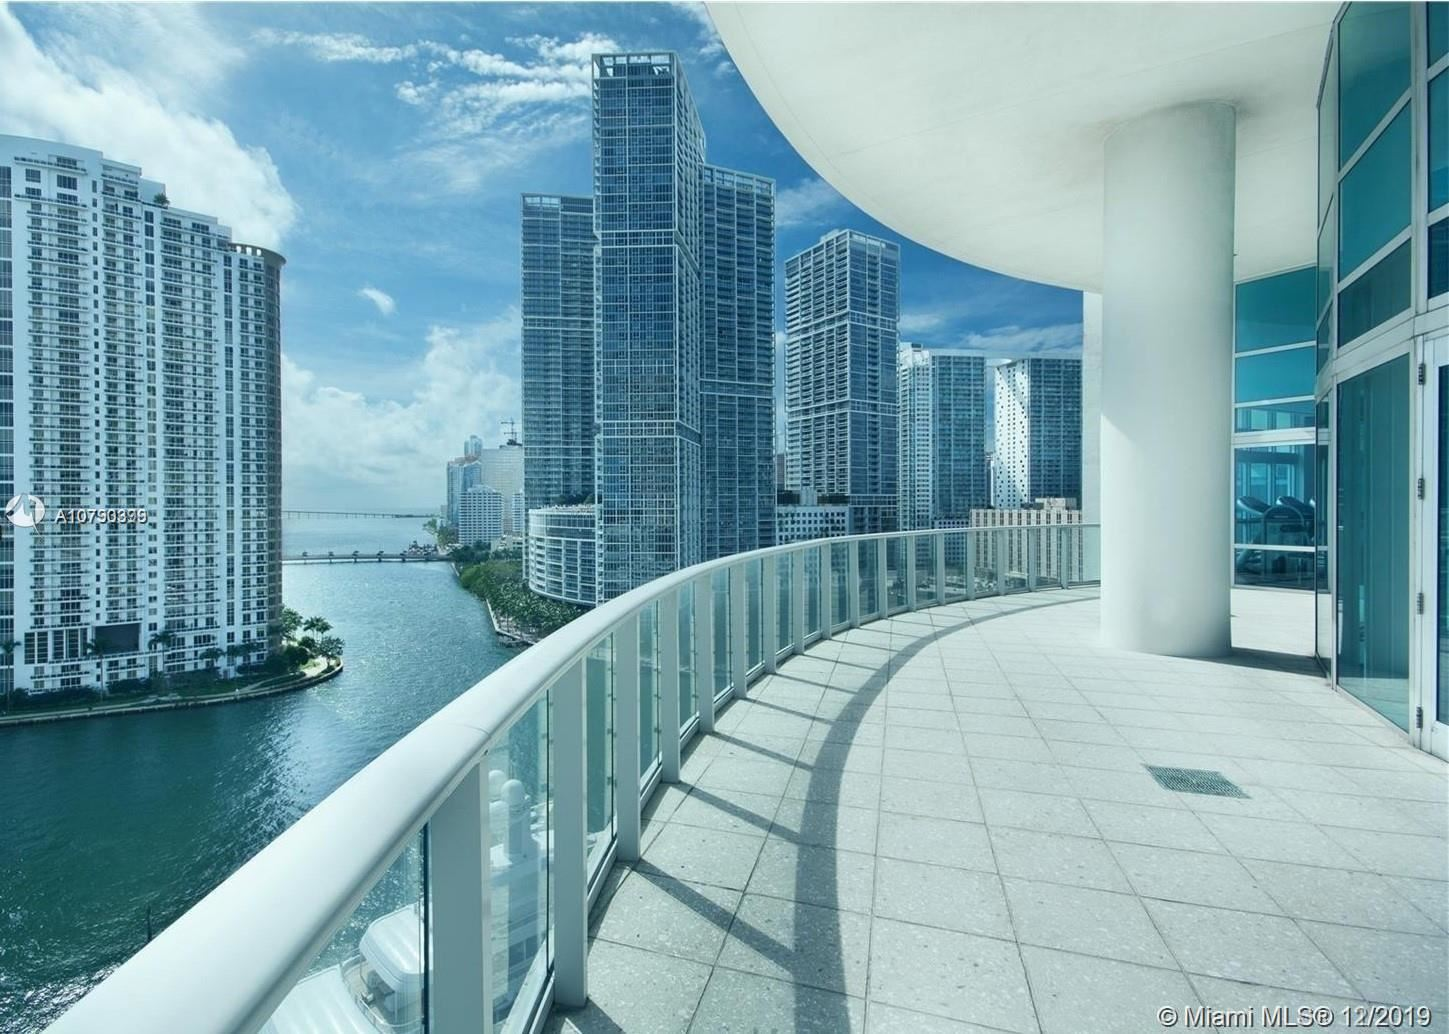 Photo 6 of Listing MLS a10790399 in 300 S BISCAYNE BLVD #L-410 Miami FL 33131